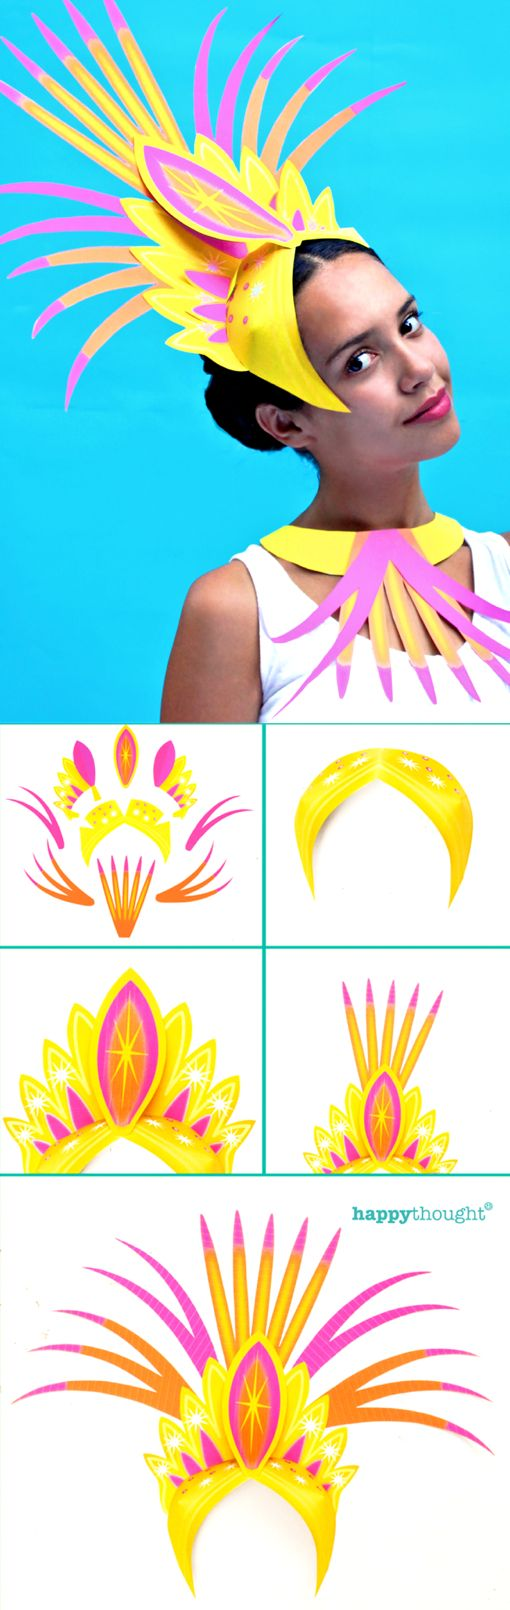 Make your own headpiece for Rio Carnival, Mardi Gras, or celebrate with your own Carnival! Printable headdress and necklace templates and DIY carnival costume tutorial at https://happythought.co.uk/product/printable-carnival-headpiece Rio here we come!